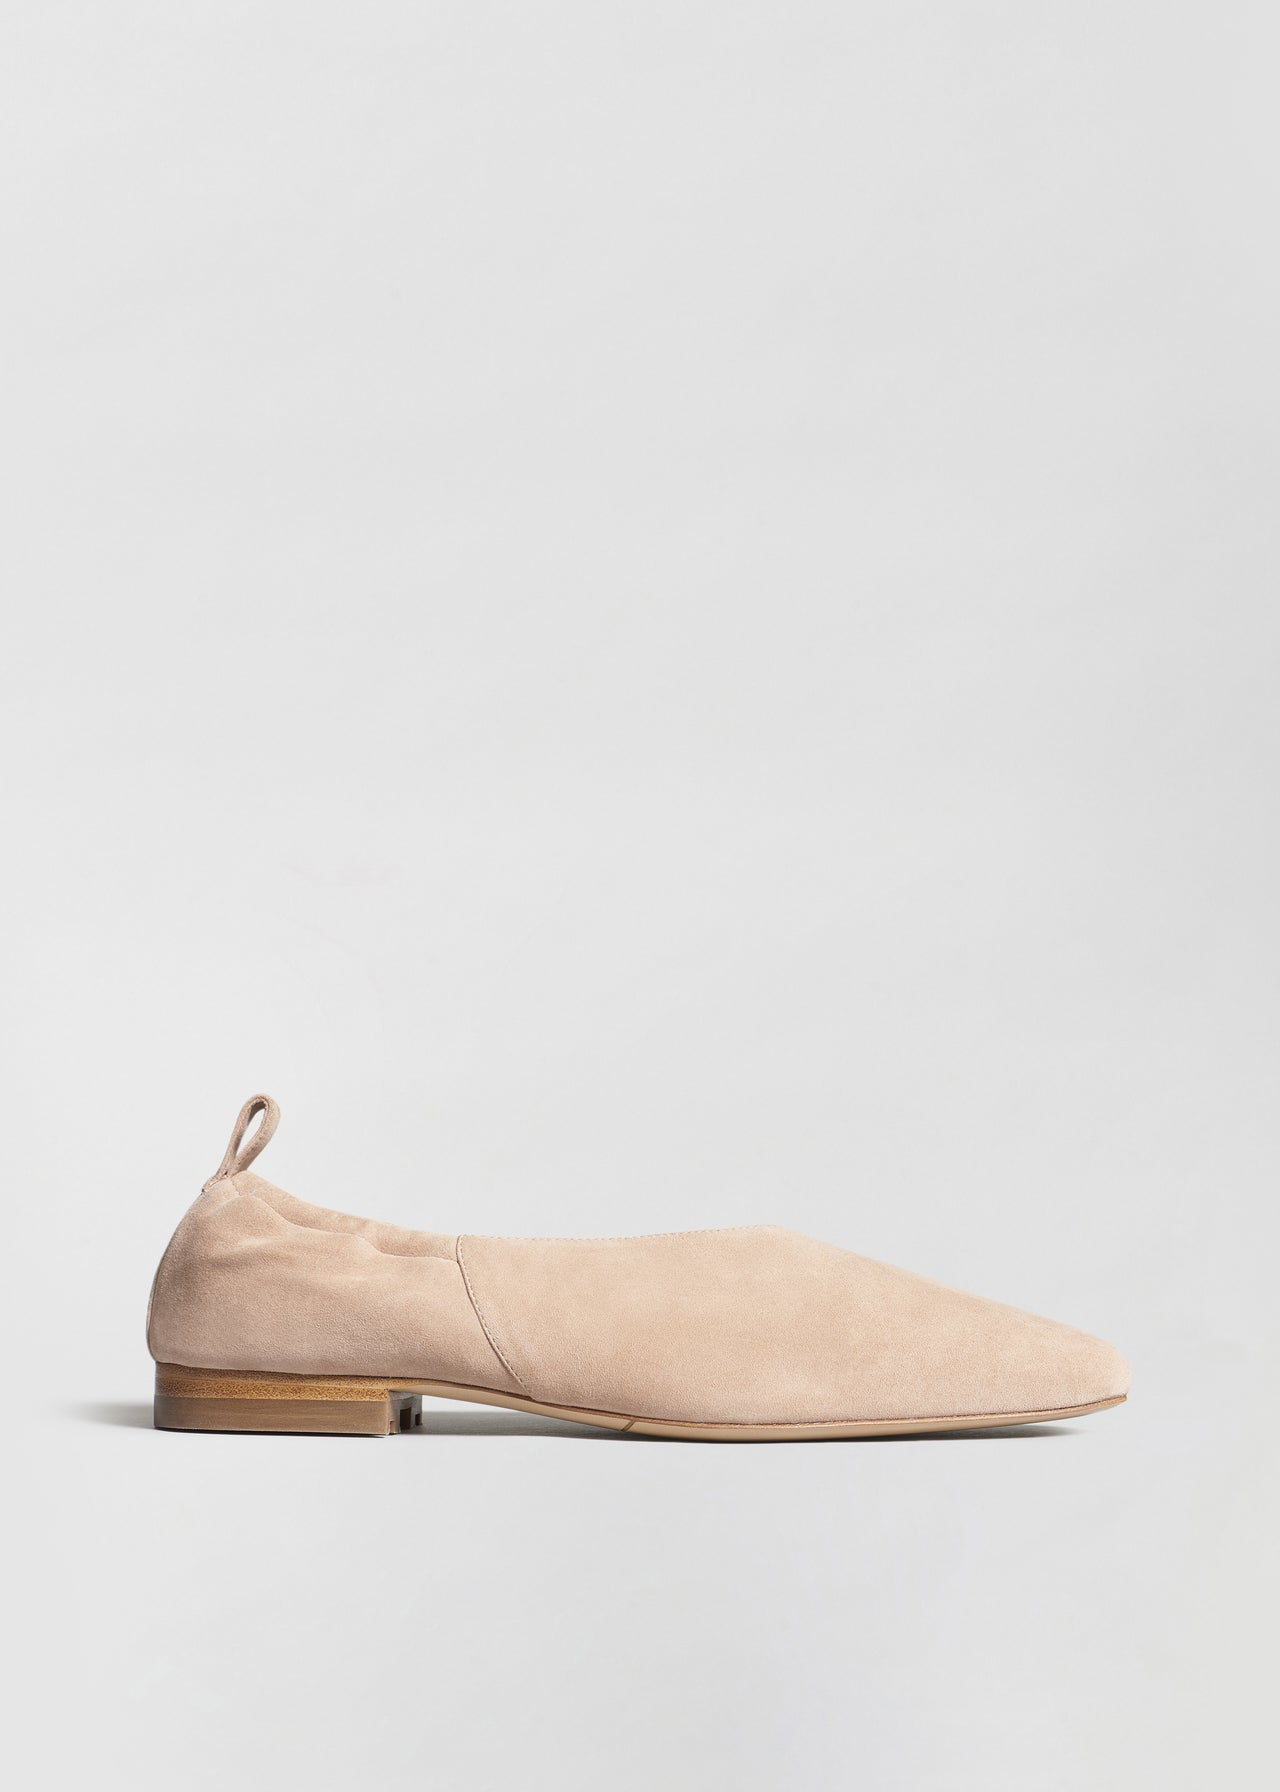 Ballet Flat in Suede - Sand